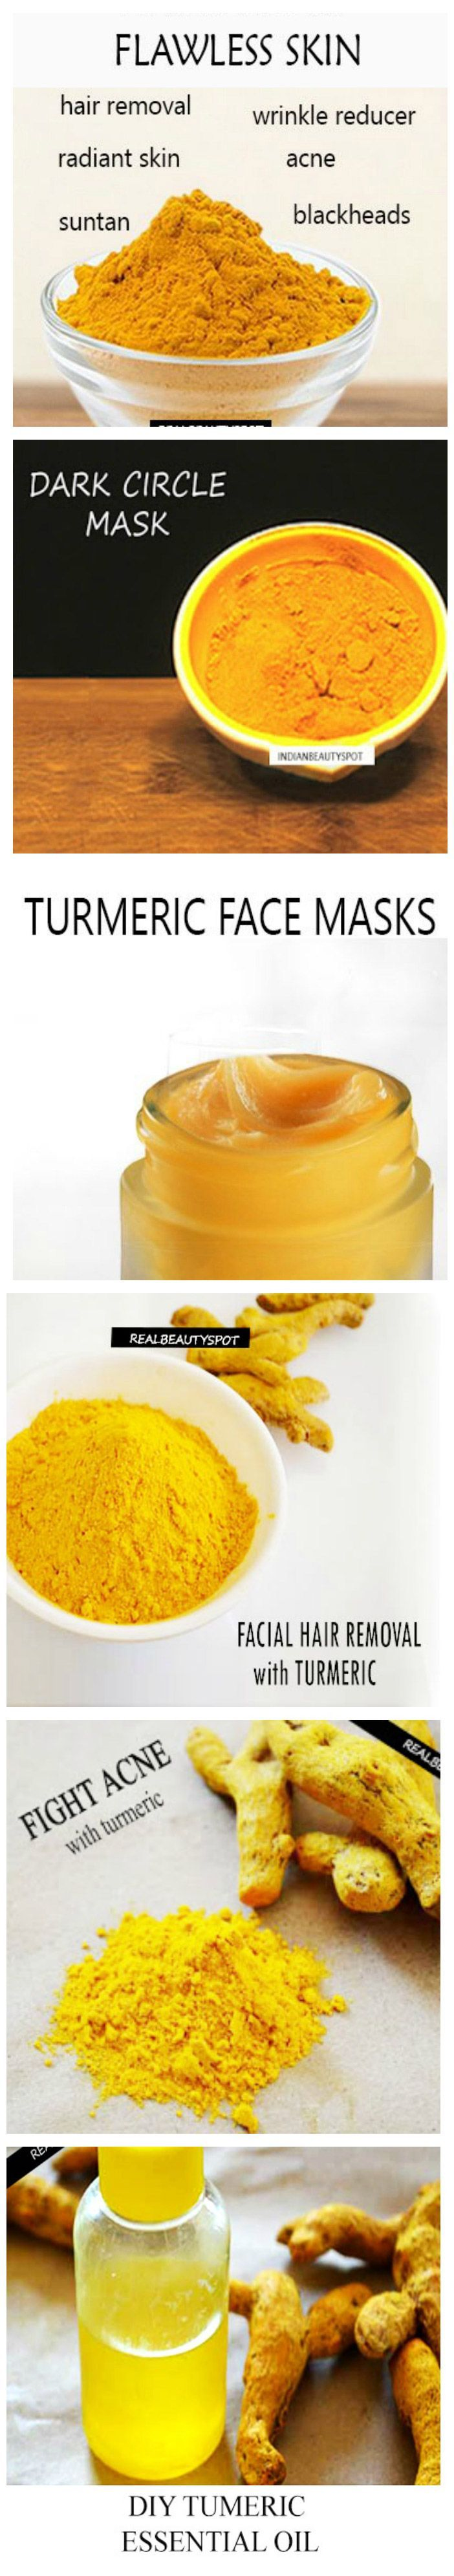 Turmeric For Facial Hair Remedies – Mix some turmeric with milk to make a thick paste. Then apply it on your face. After it dries off, rub it off using gentle c